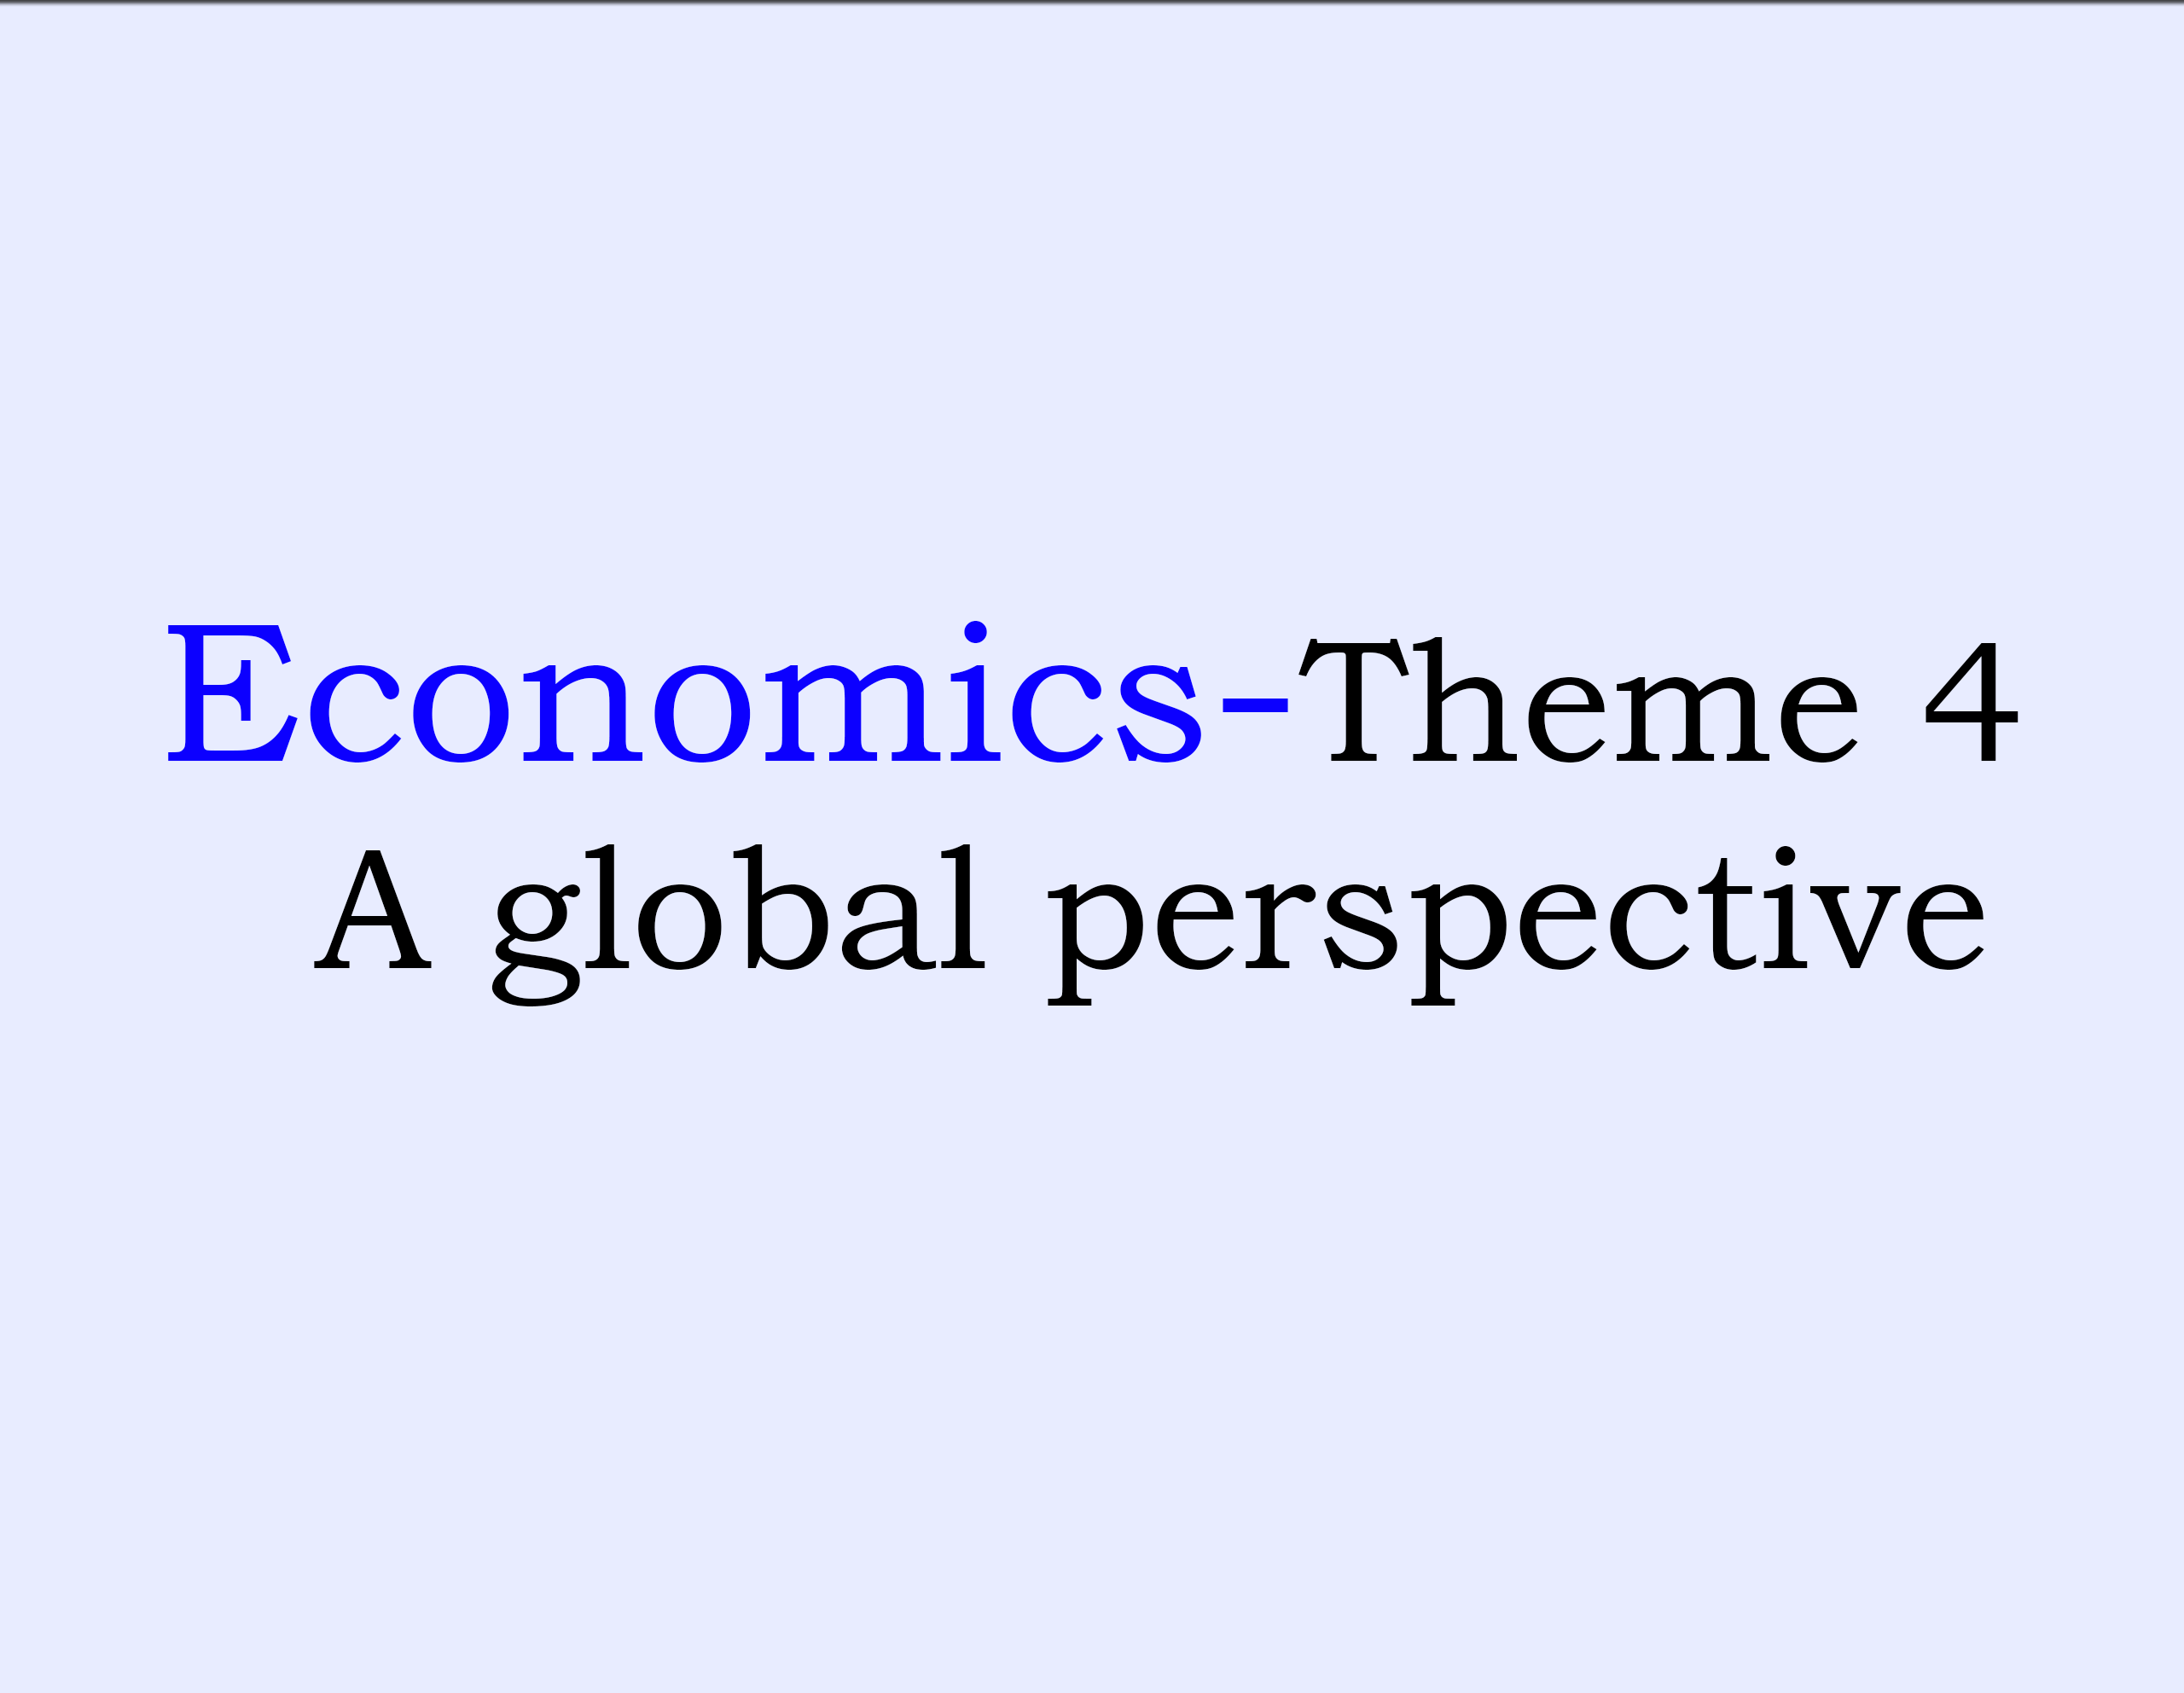 Theme 4: A global perspective